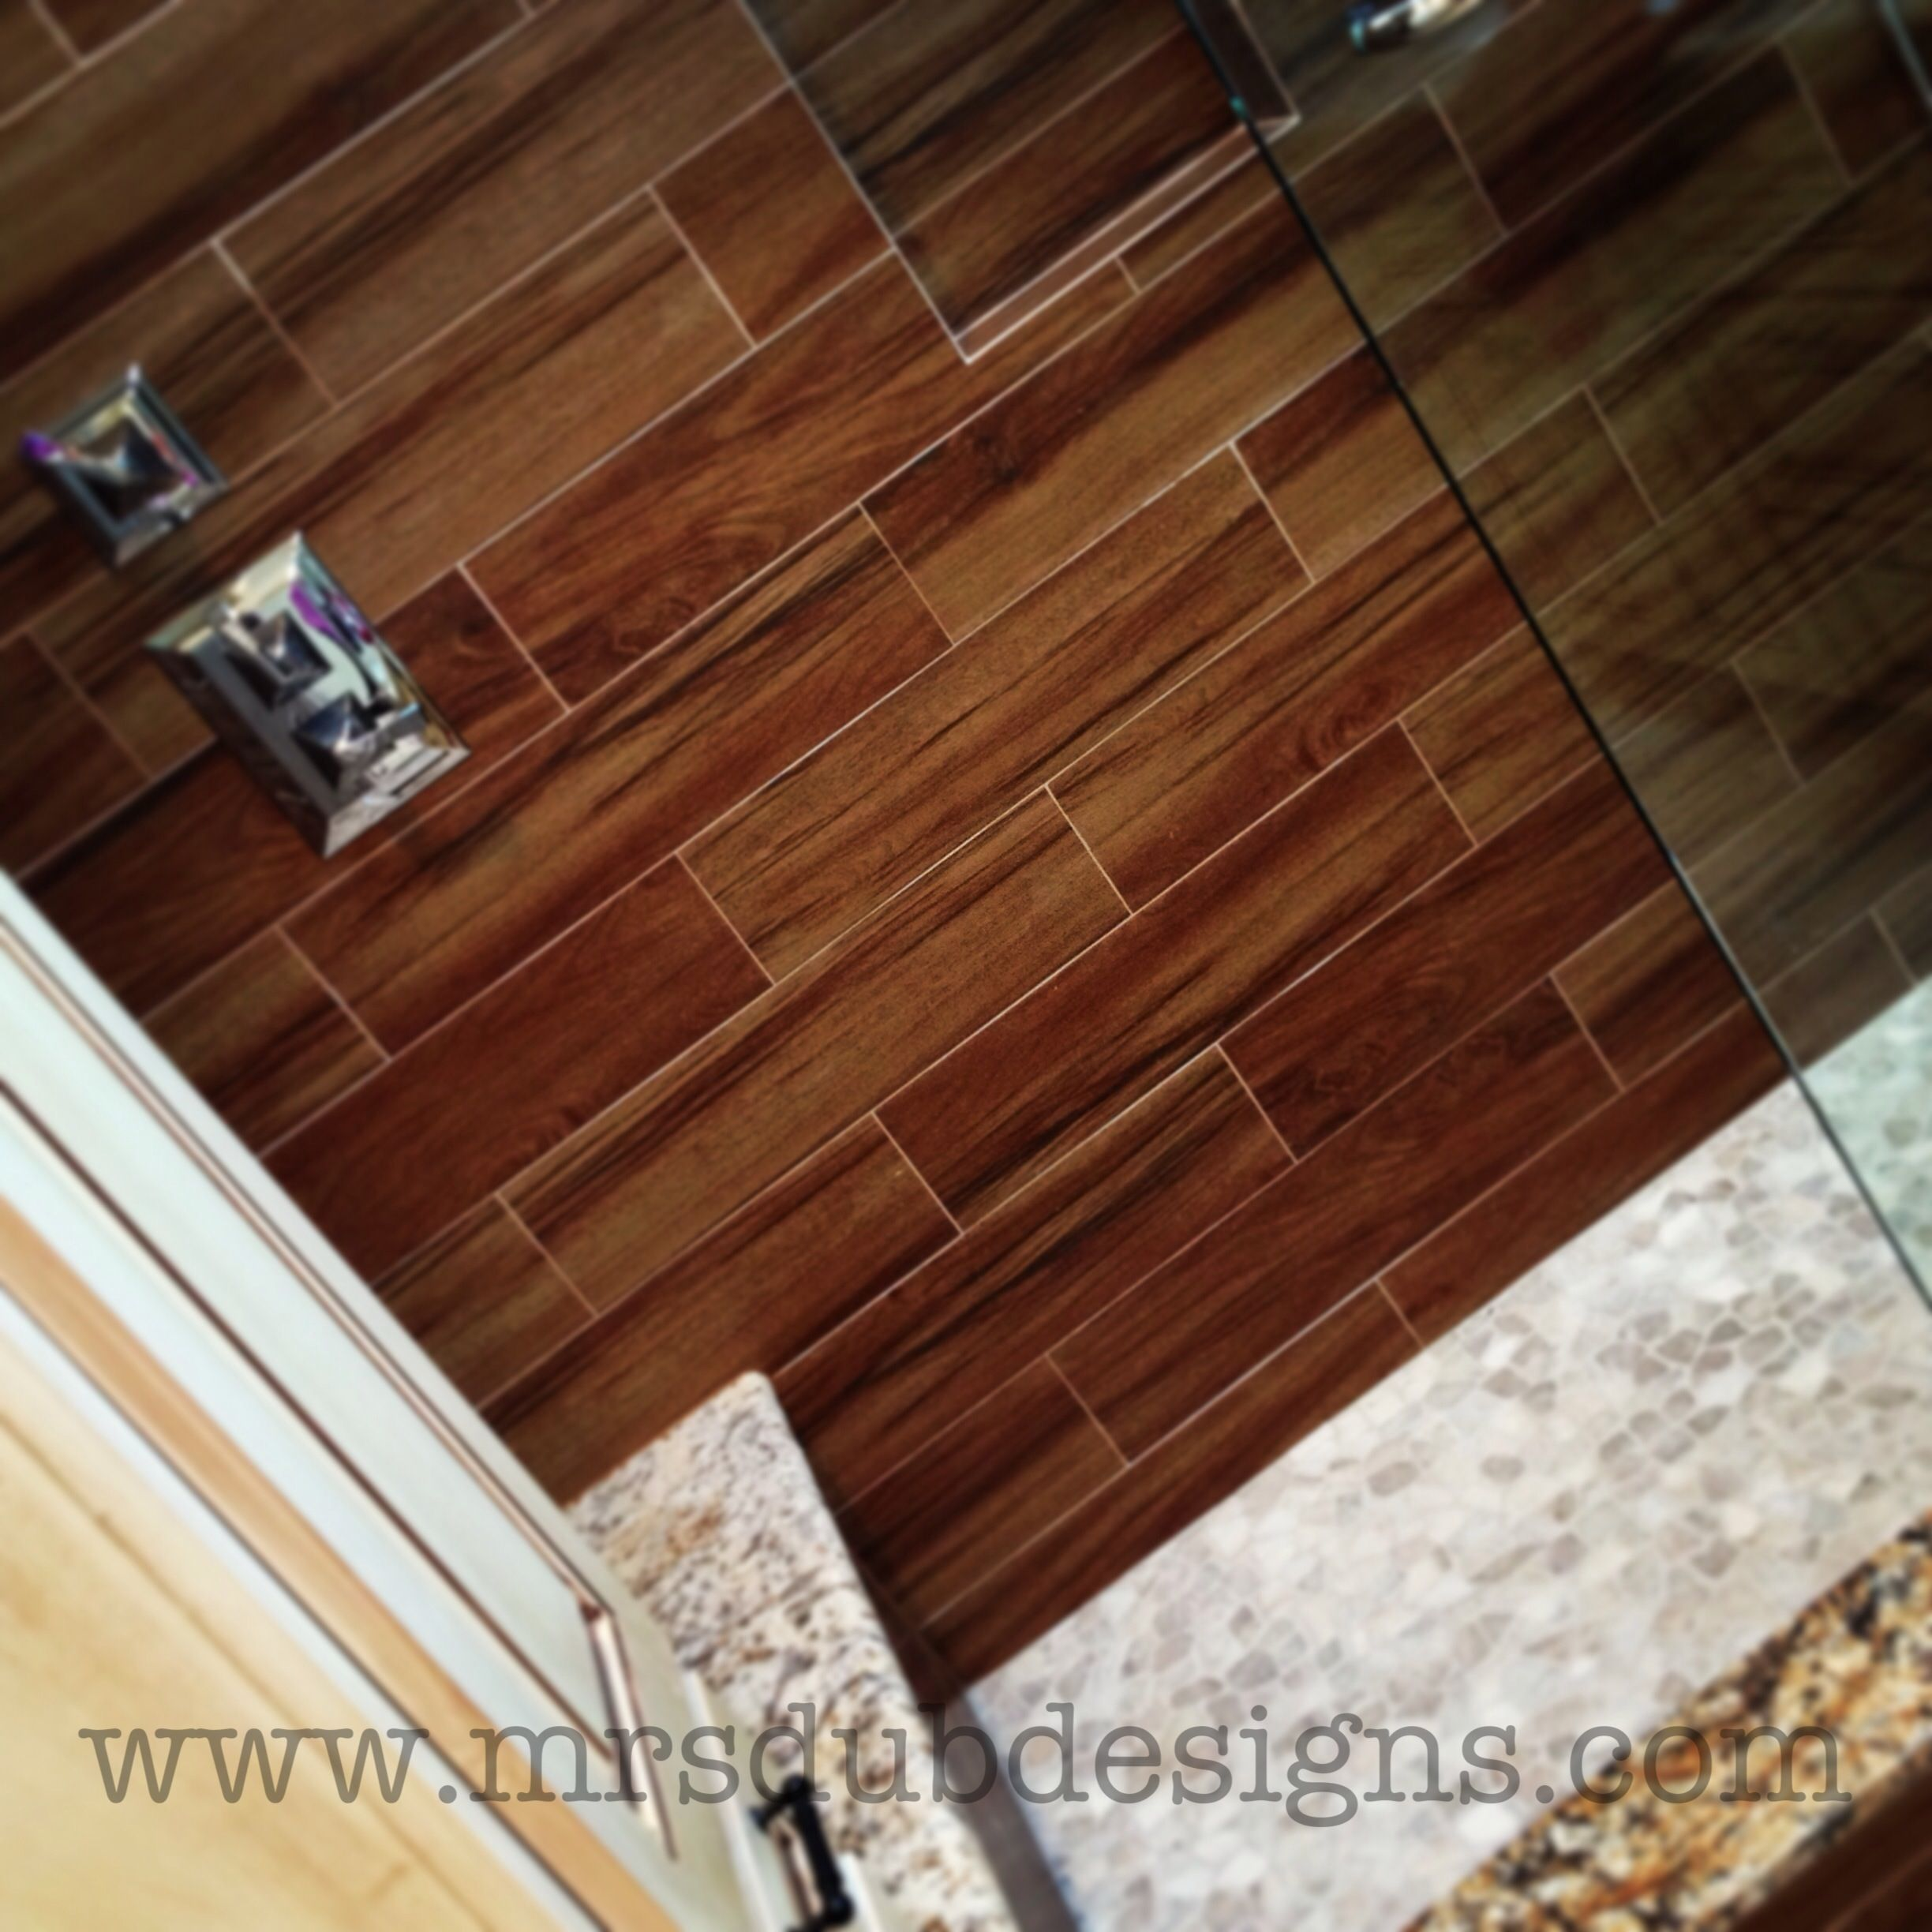 this master bathroom shower features wood grain tile contrasting pebble floor and seamless. Black Bedroom Furniture Sets. Home Design Ideas